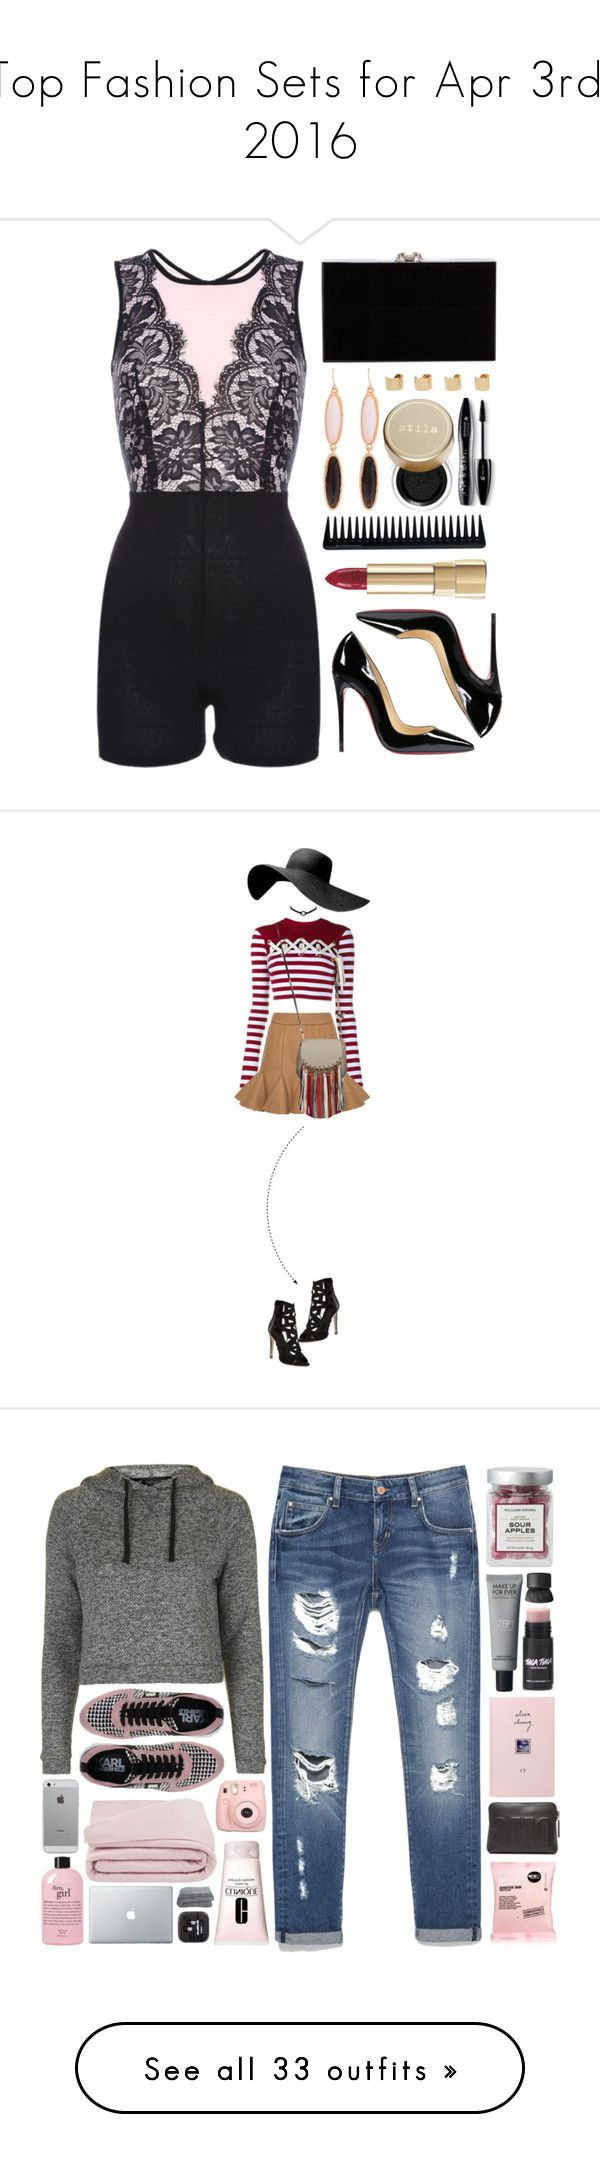 """""""Top Fashion Sets for Apr 3rd, 2016"""" by polyvore ❤ liked on Polyvore featuring Christian Louboutin, Charlotte Olympia, Maison Margiela, Stila, Lancôme, Dolce&Gabbana, GHD, House of Holland, Chloé and Rebecca Minkoff"""